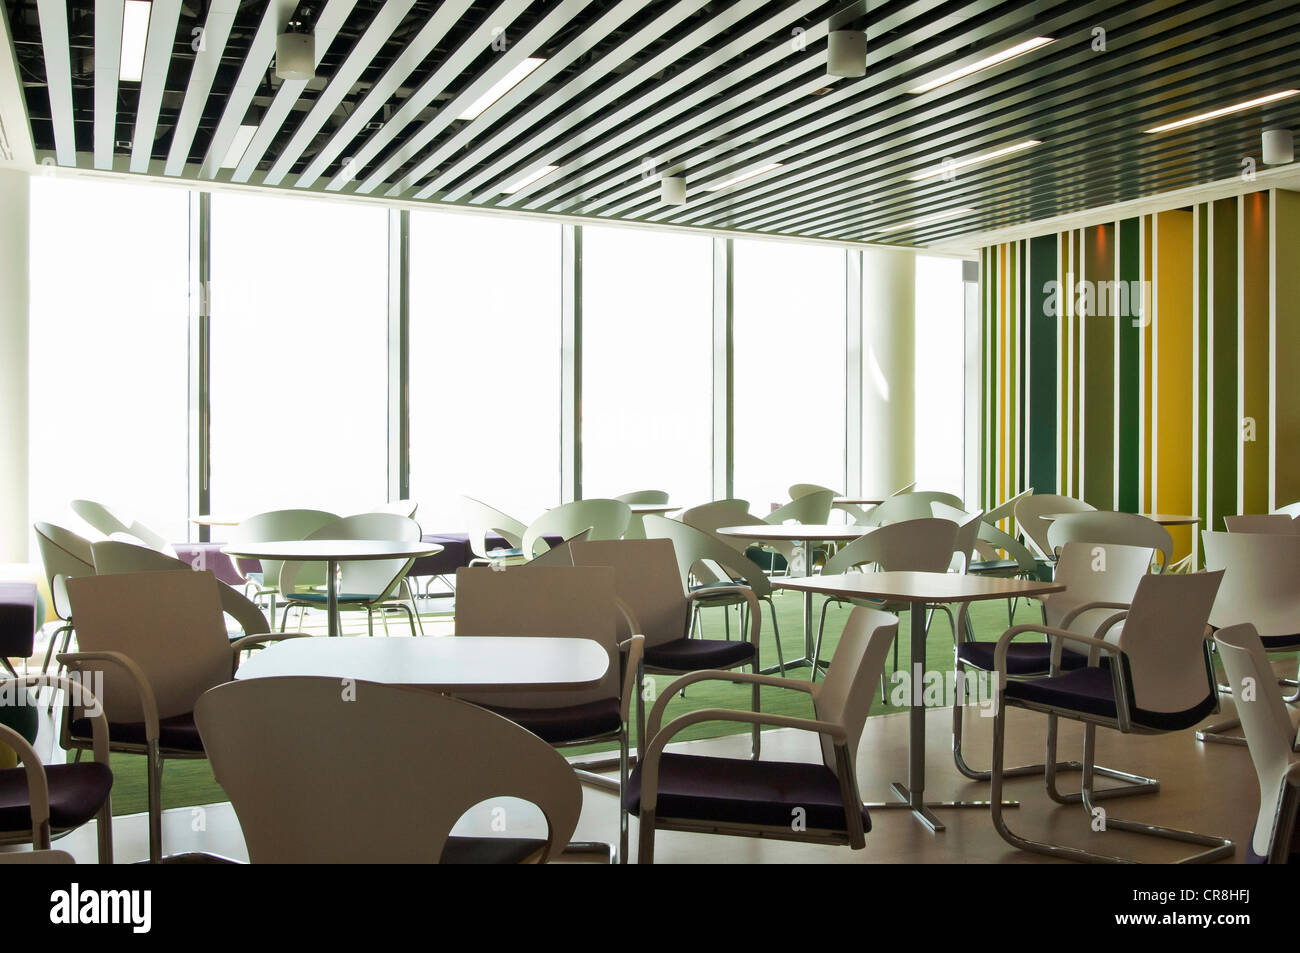 Chairs and tables in empty room of office block - Stock Image